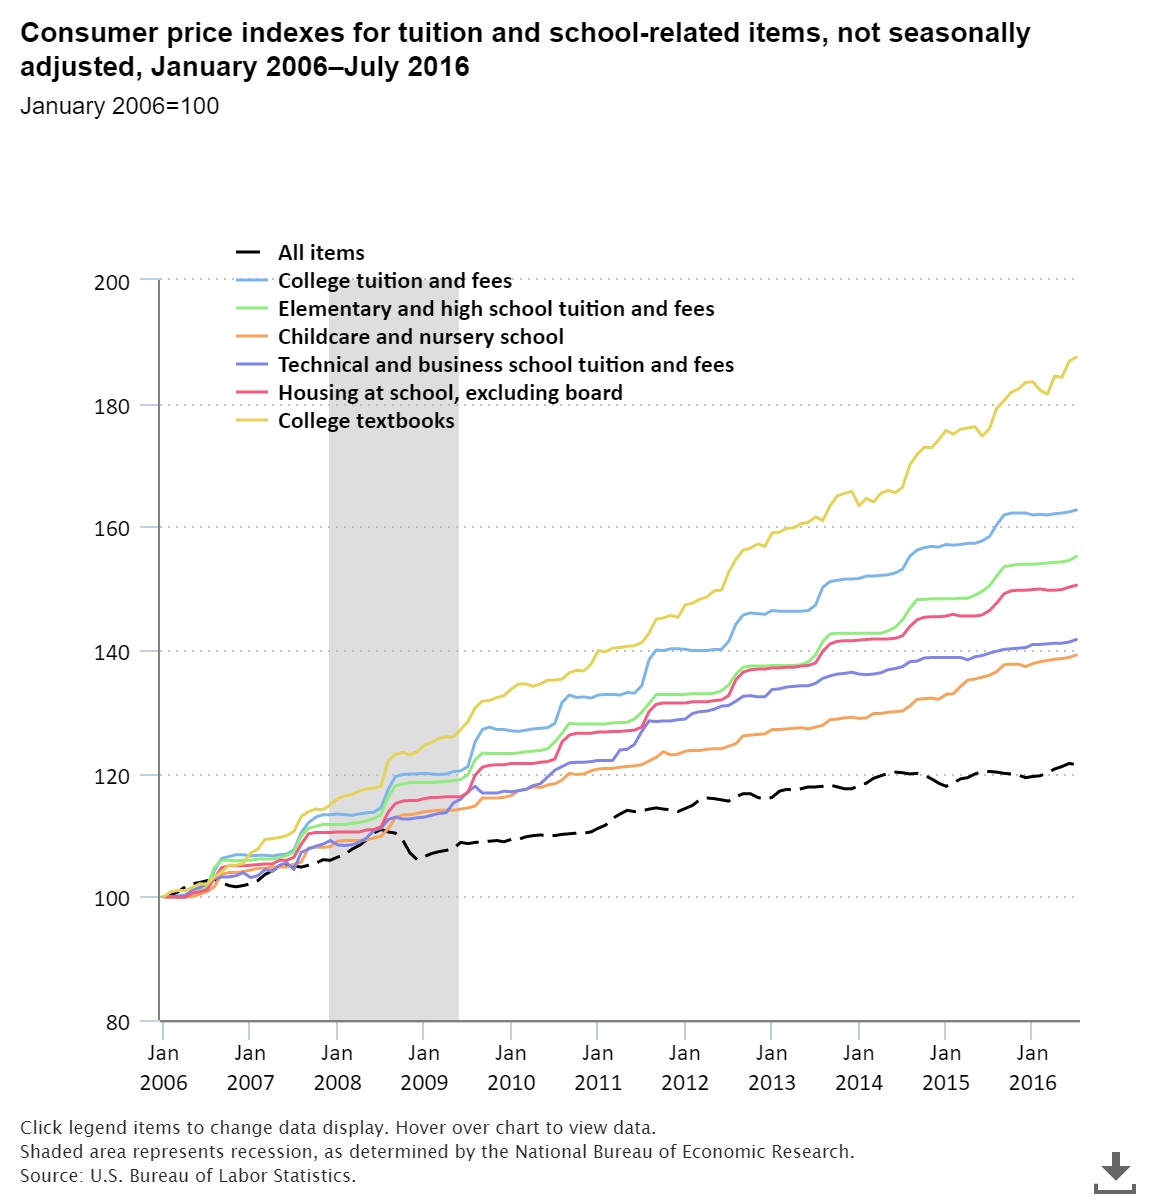 Consumer price indexes for tuition and school-related items.